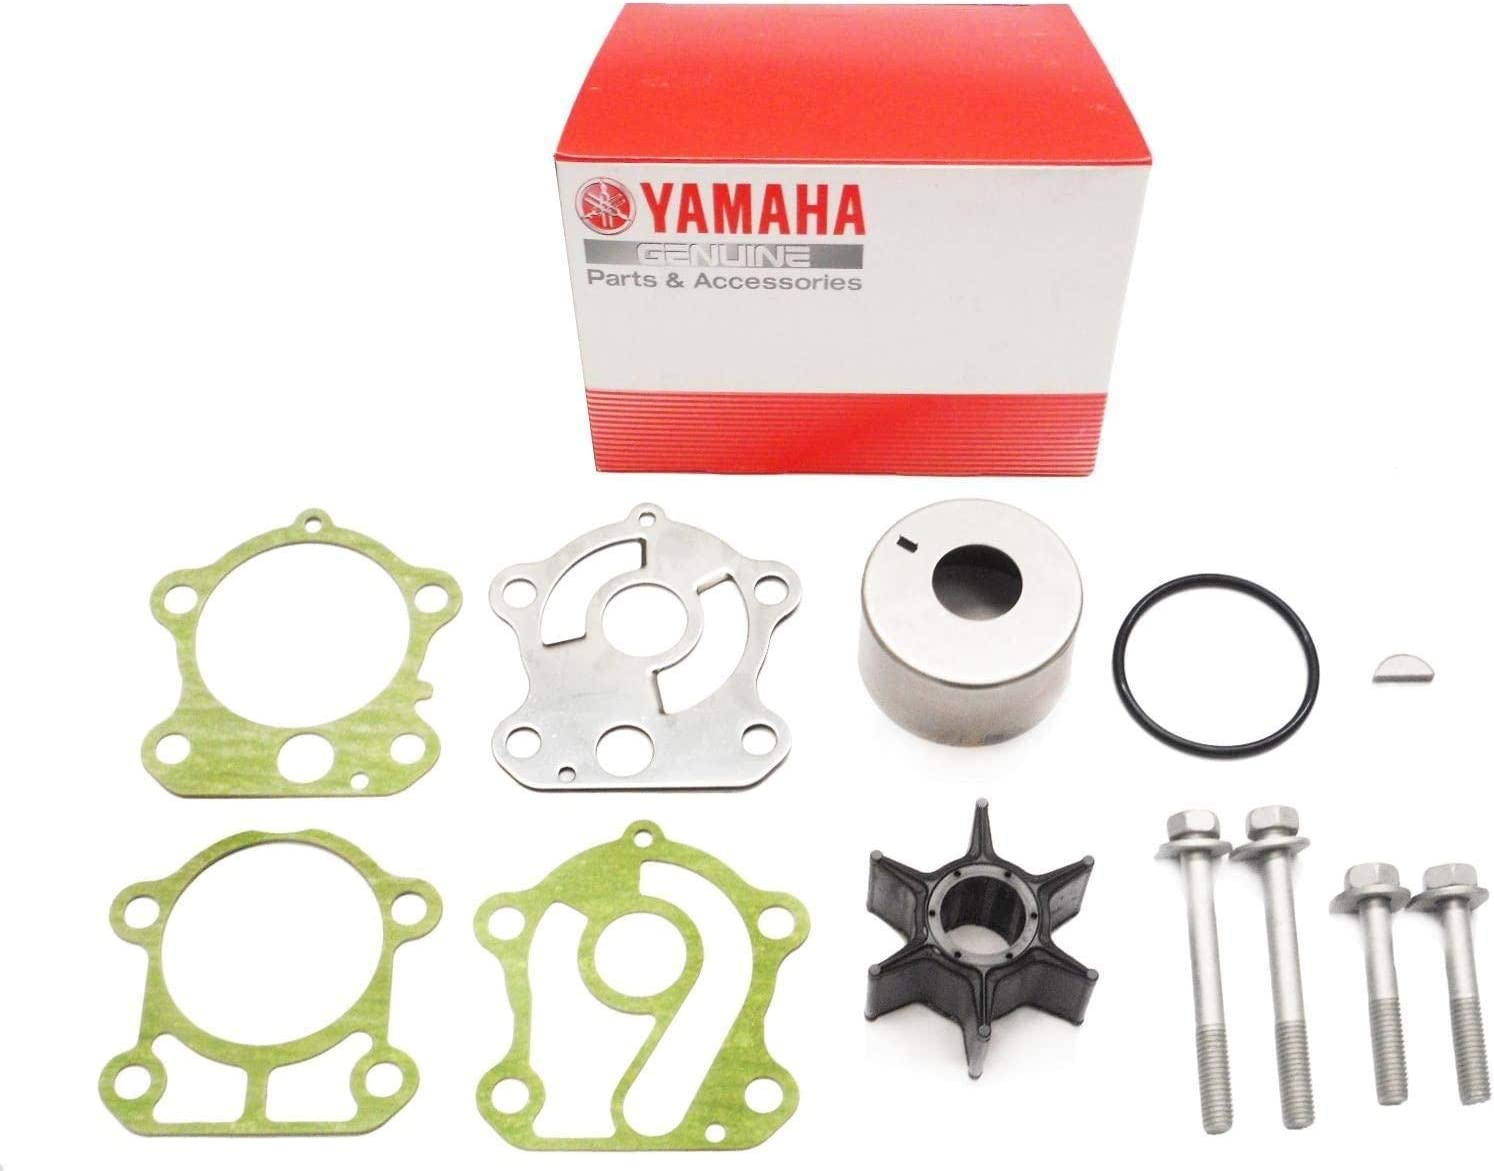 Yamaha Outboard Water Pump Impeller Repair Kit 692-W0078-02-00 692W00780200